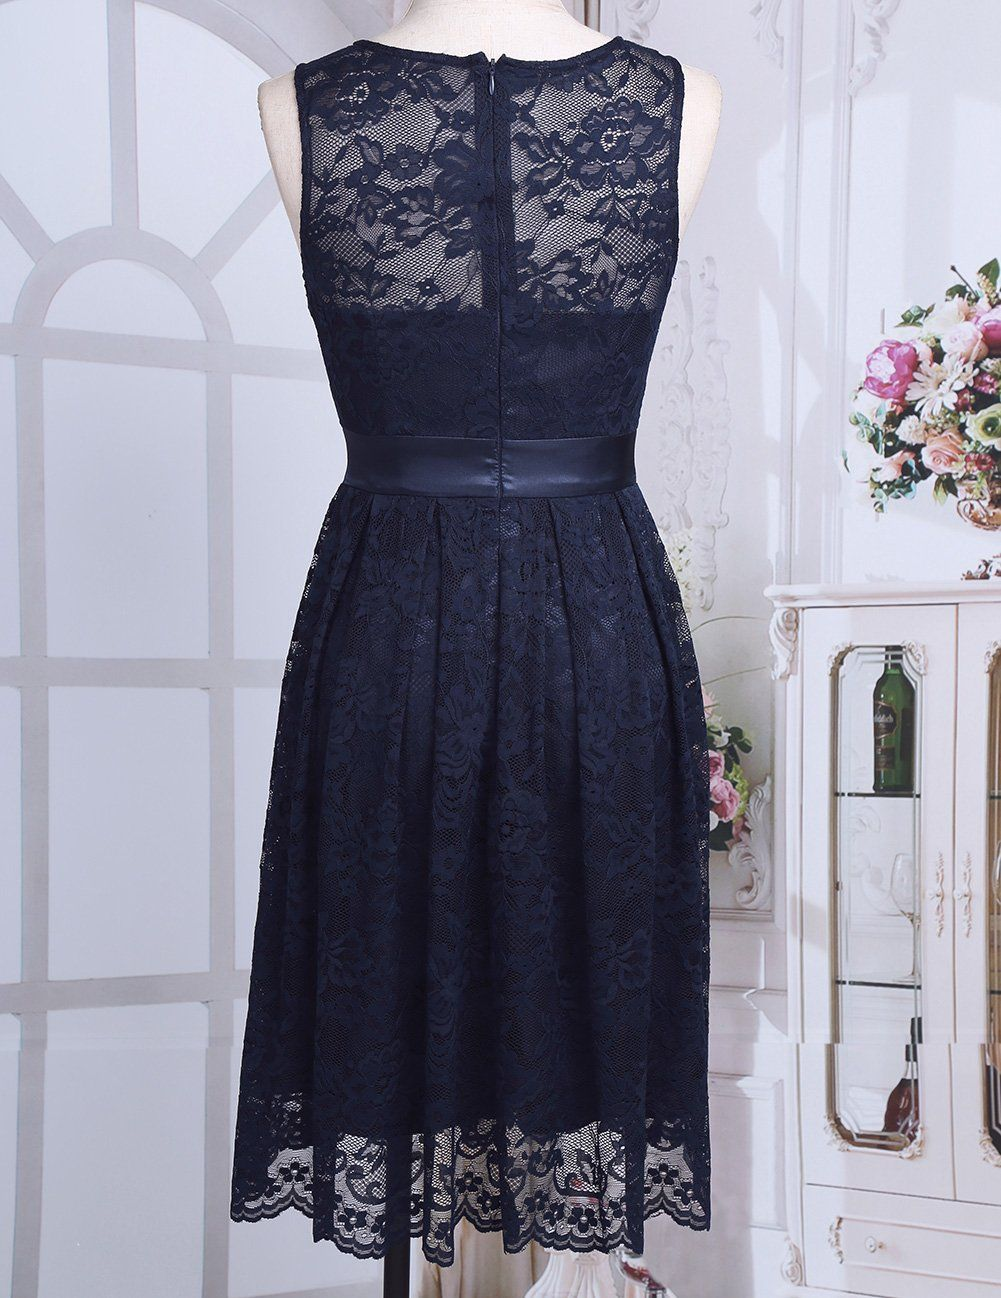 Freebily Women Floral Lace Bridesmaid Sleeveless Short Dress Evening Cocktail Party Navy Blue 10 >>> See this excellent product. (This is an affiliate link ). #bridesmaiddresses #navyblueshortdress